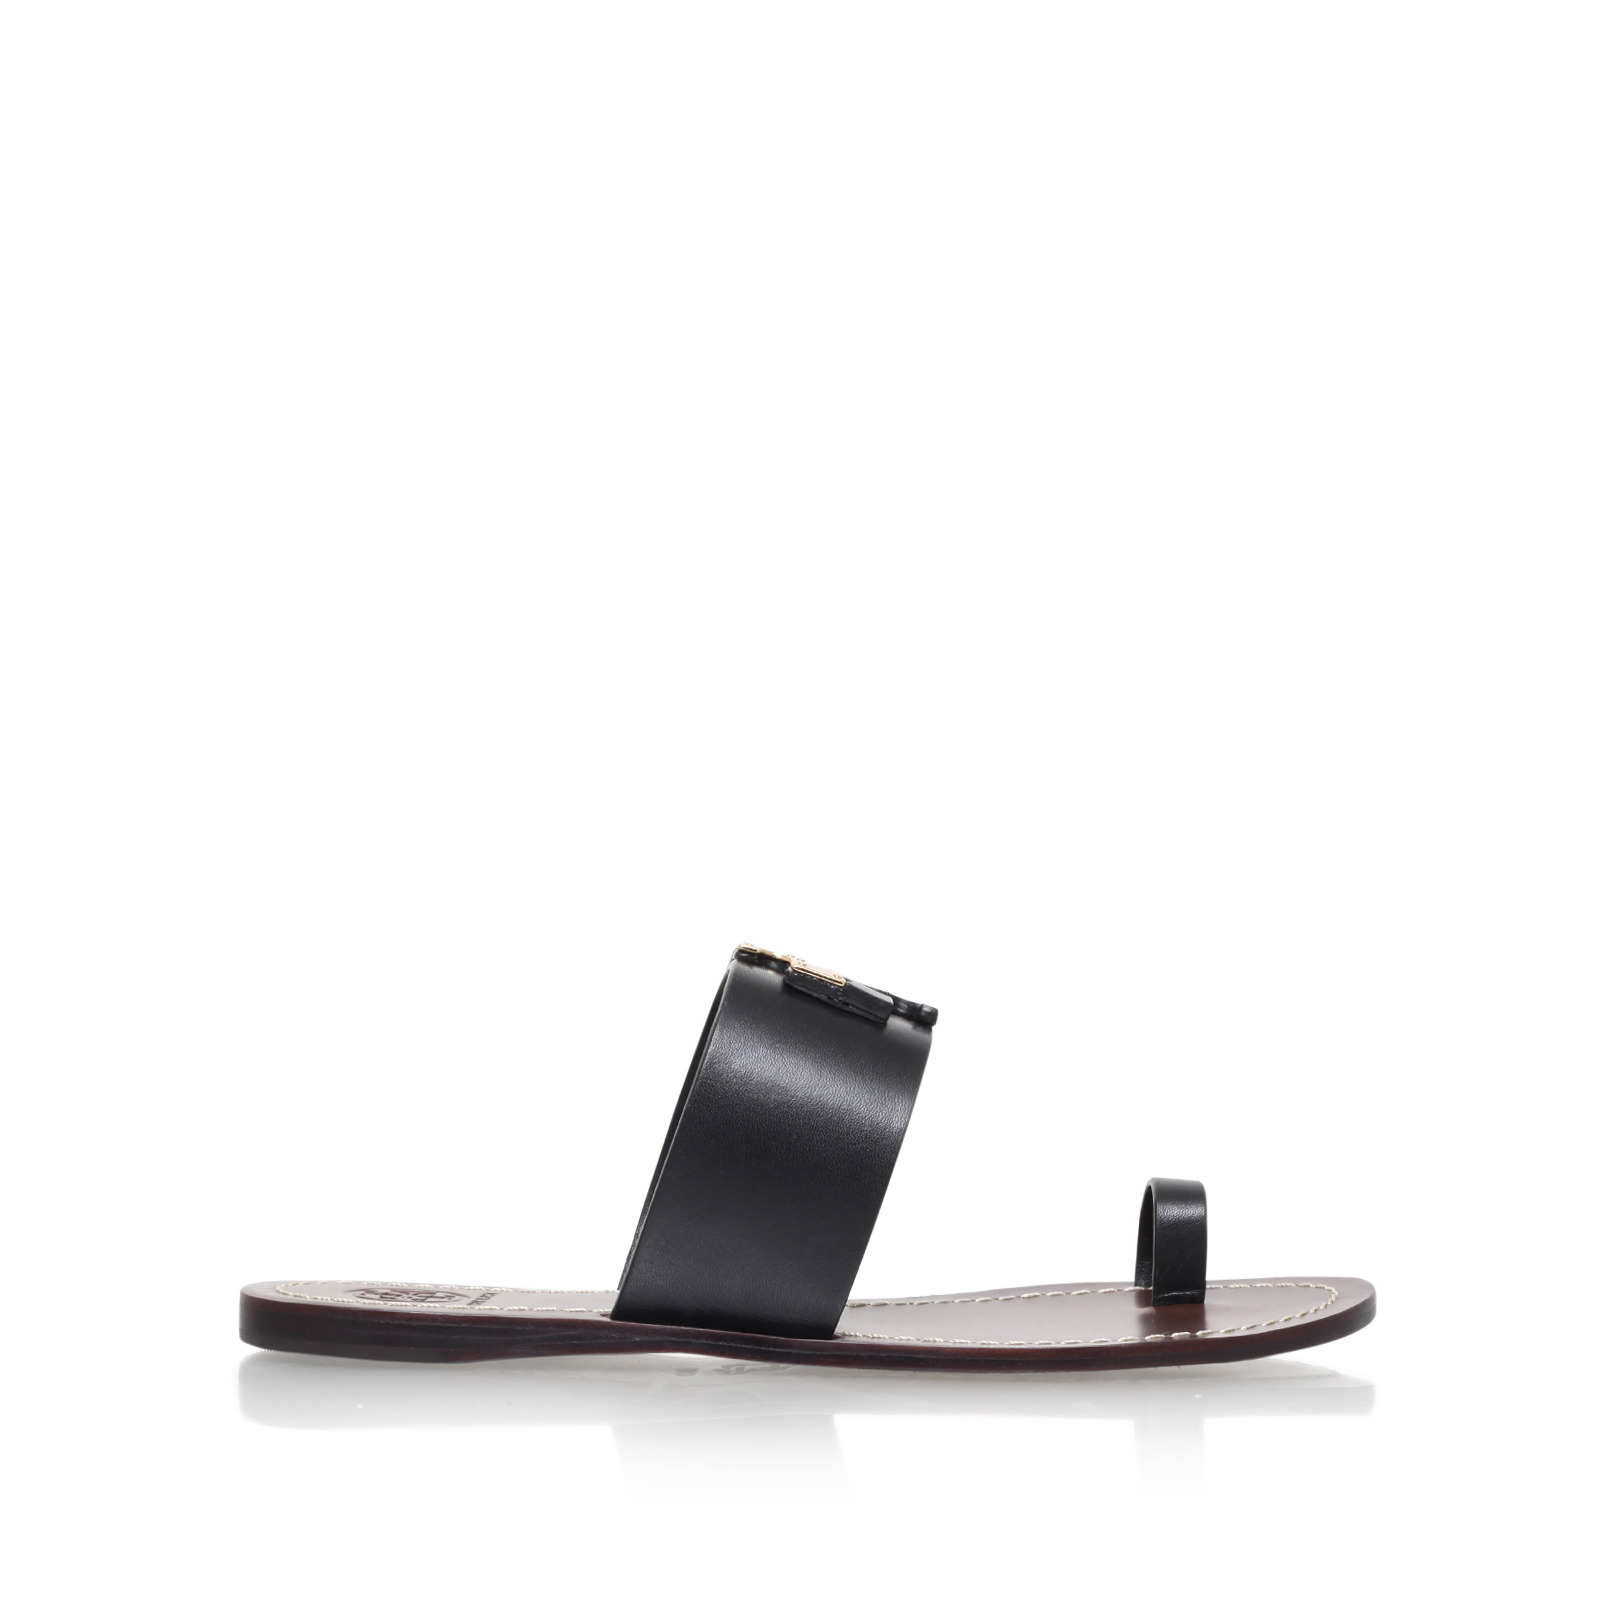 eabc09e5f LOWELL SLIDE  Tory Burch Lowell Slide Black Leather Sandal  by TORY BURCH